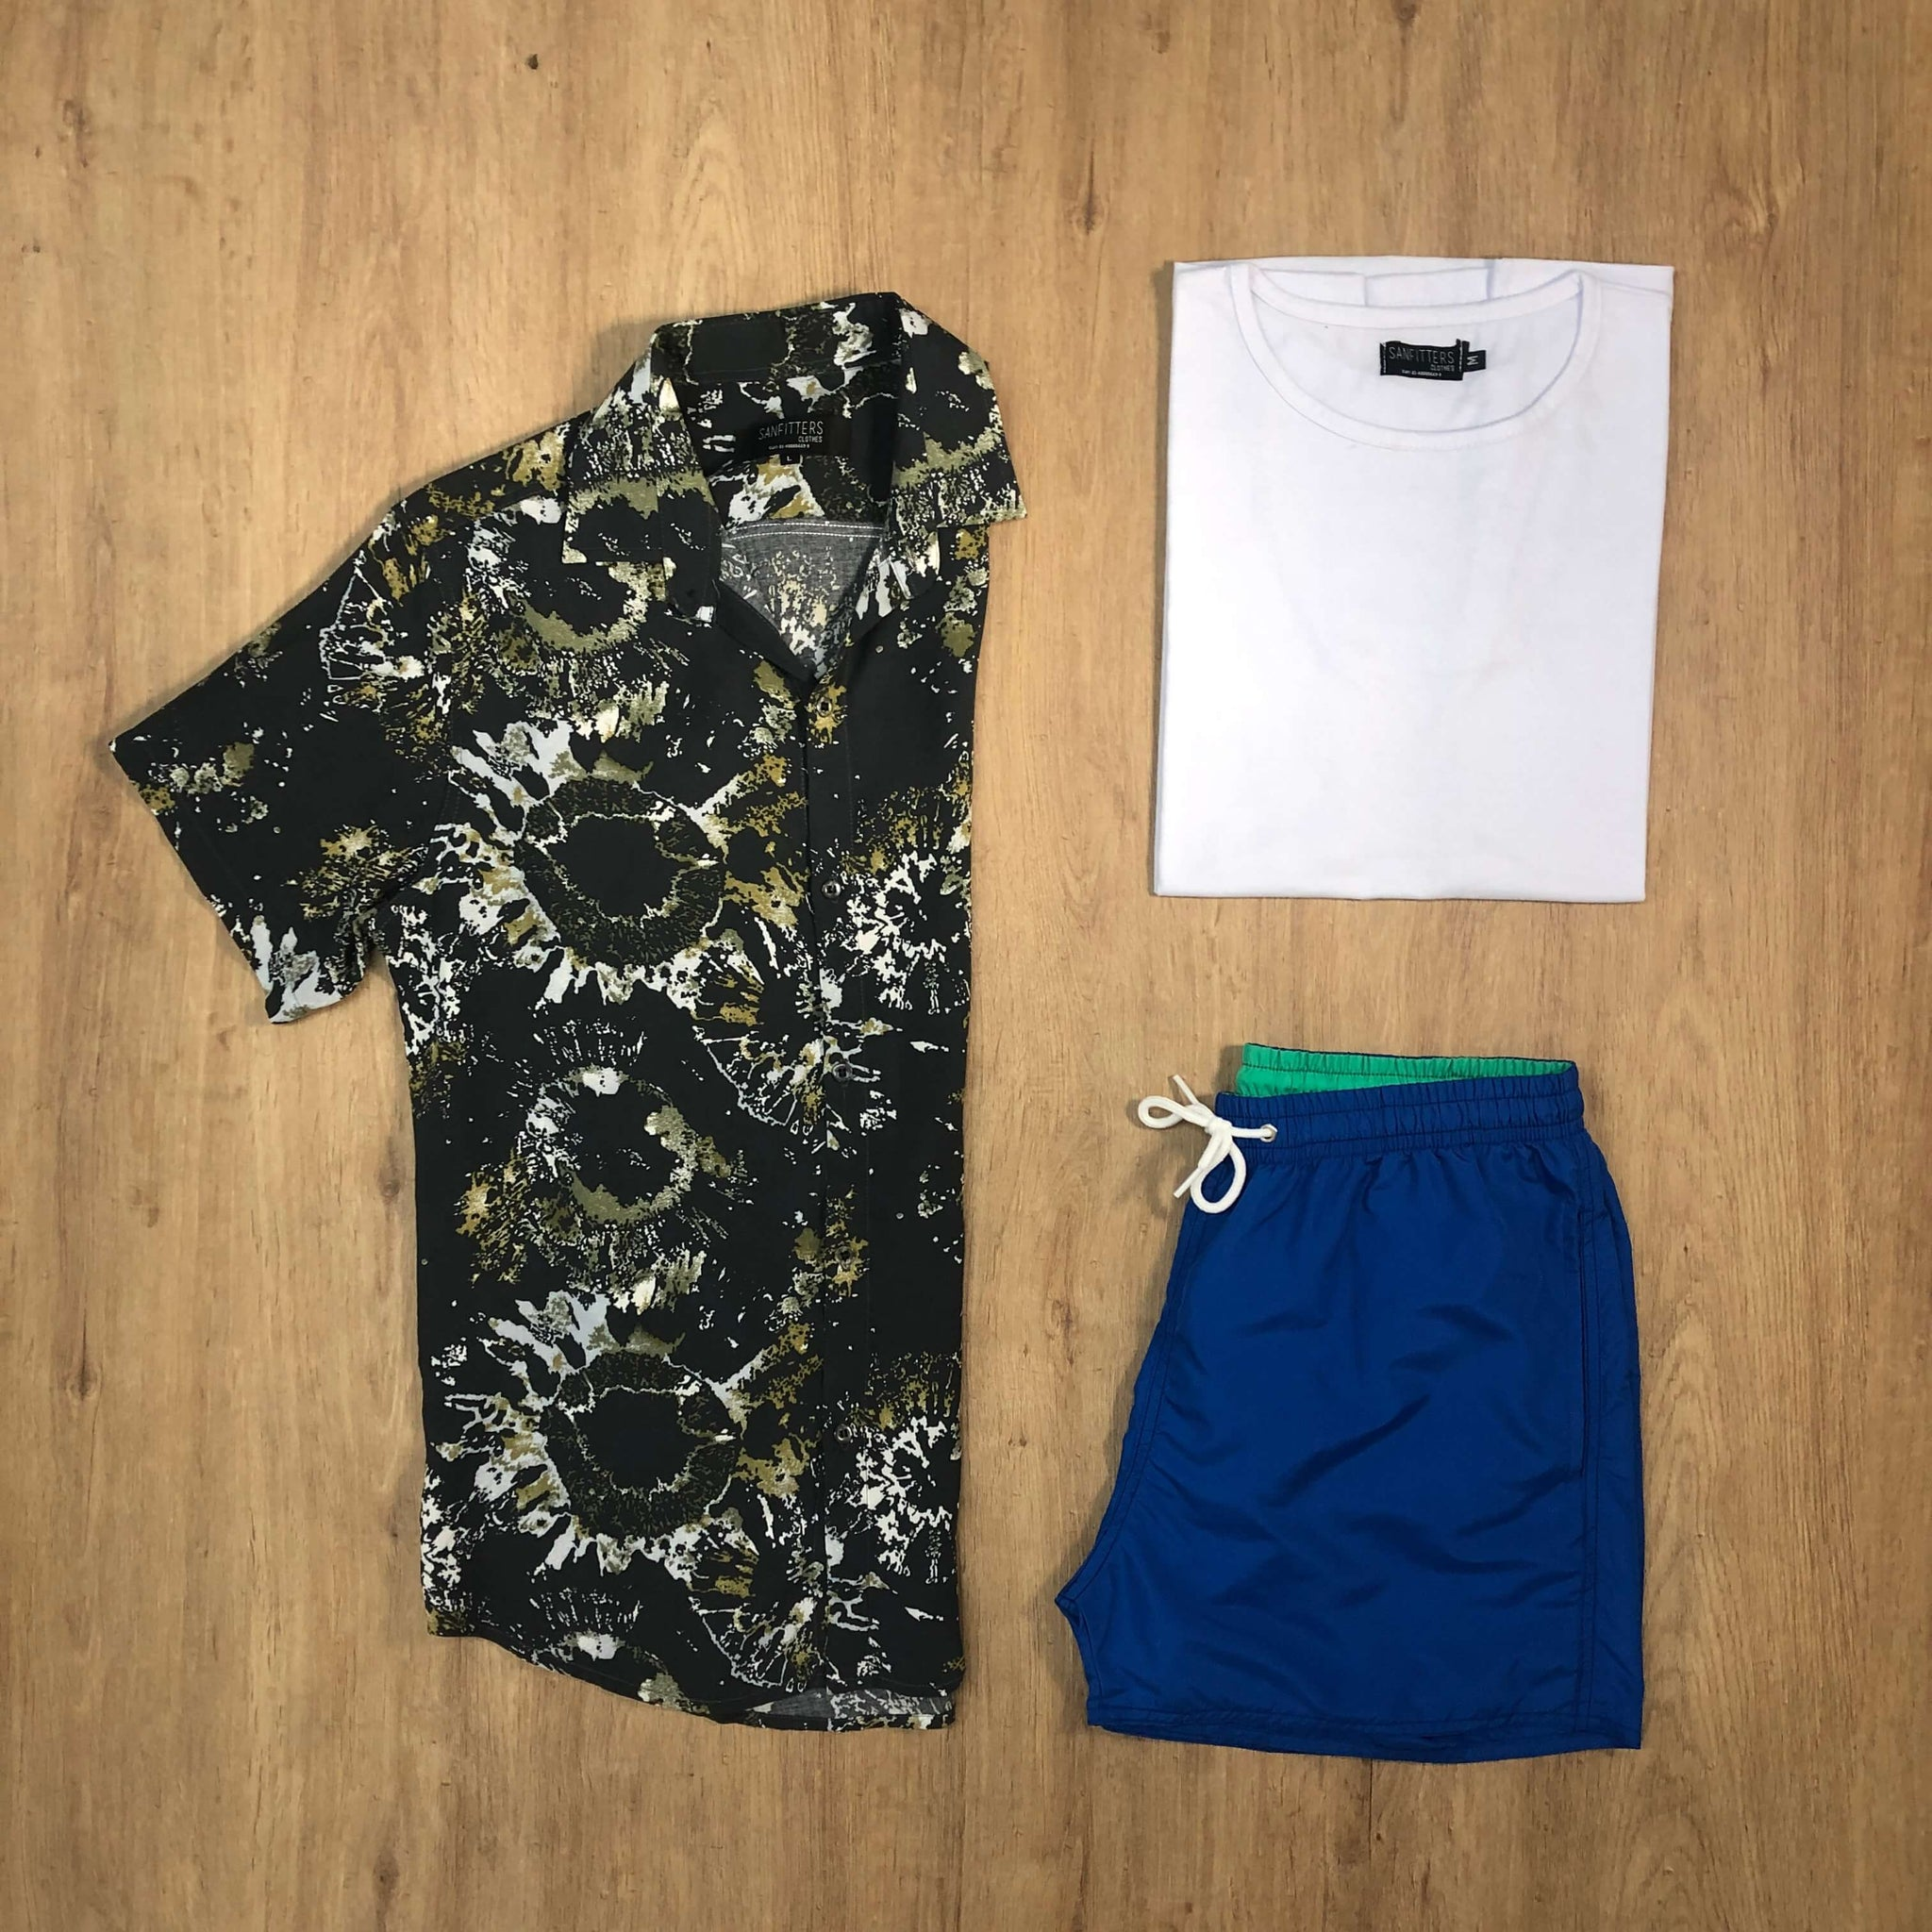 Outfit SNF 656 Short de baño Francia - Camisa Fireworks - Remera Basic